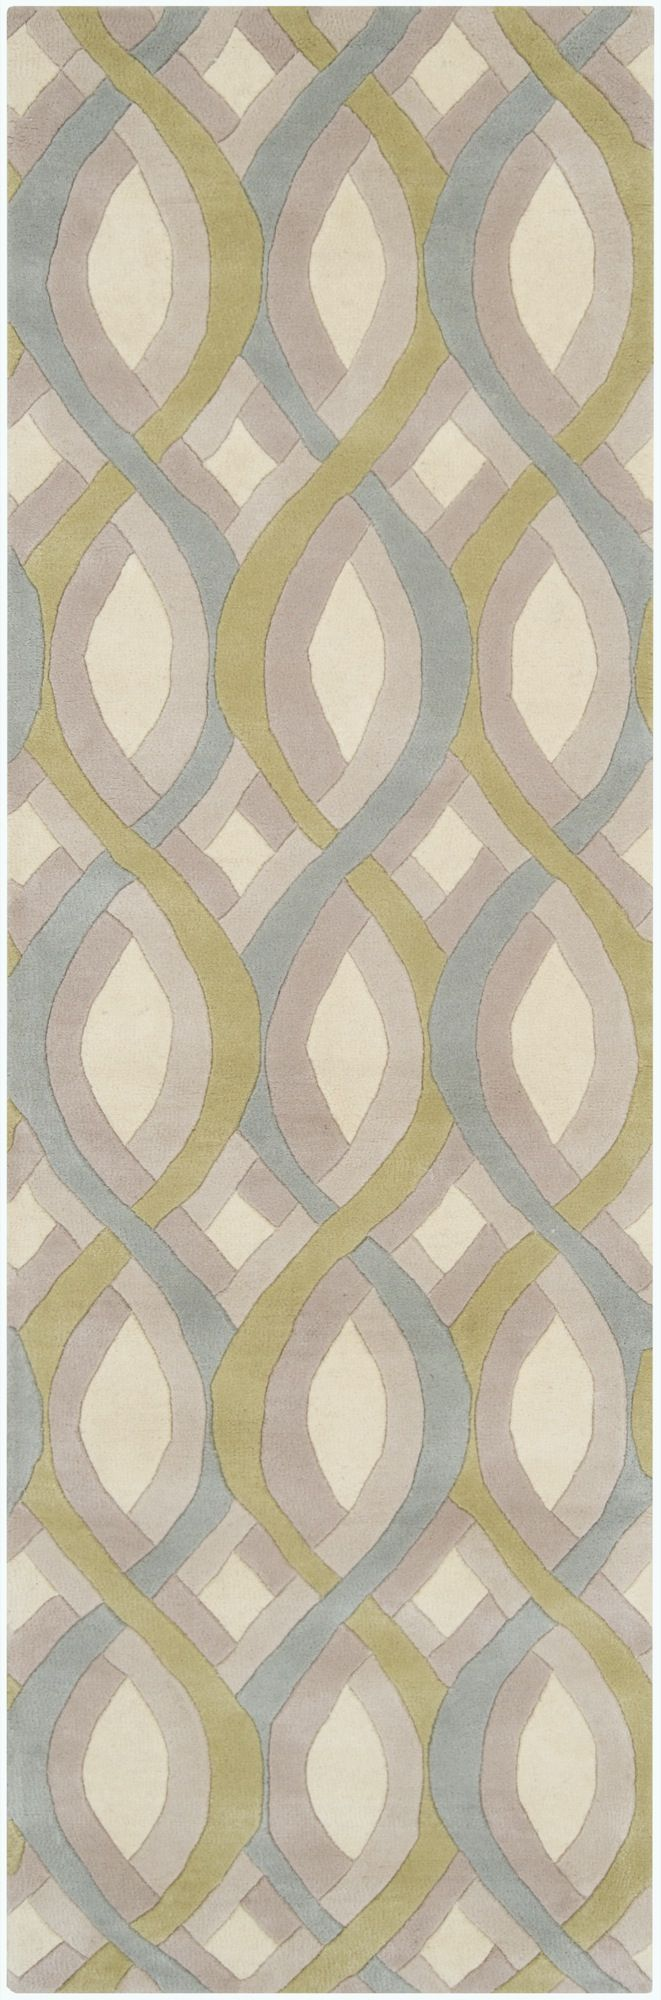 surya modern classics transitional area rug collection